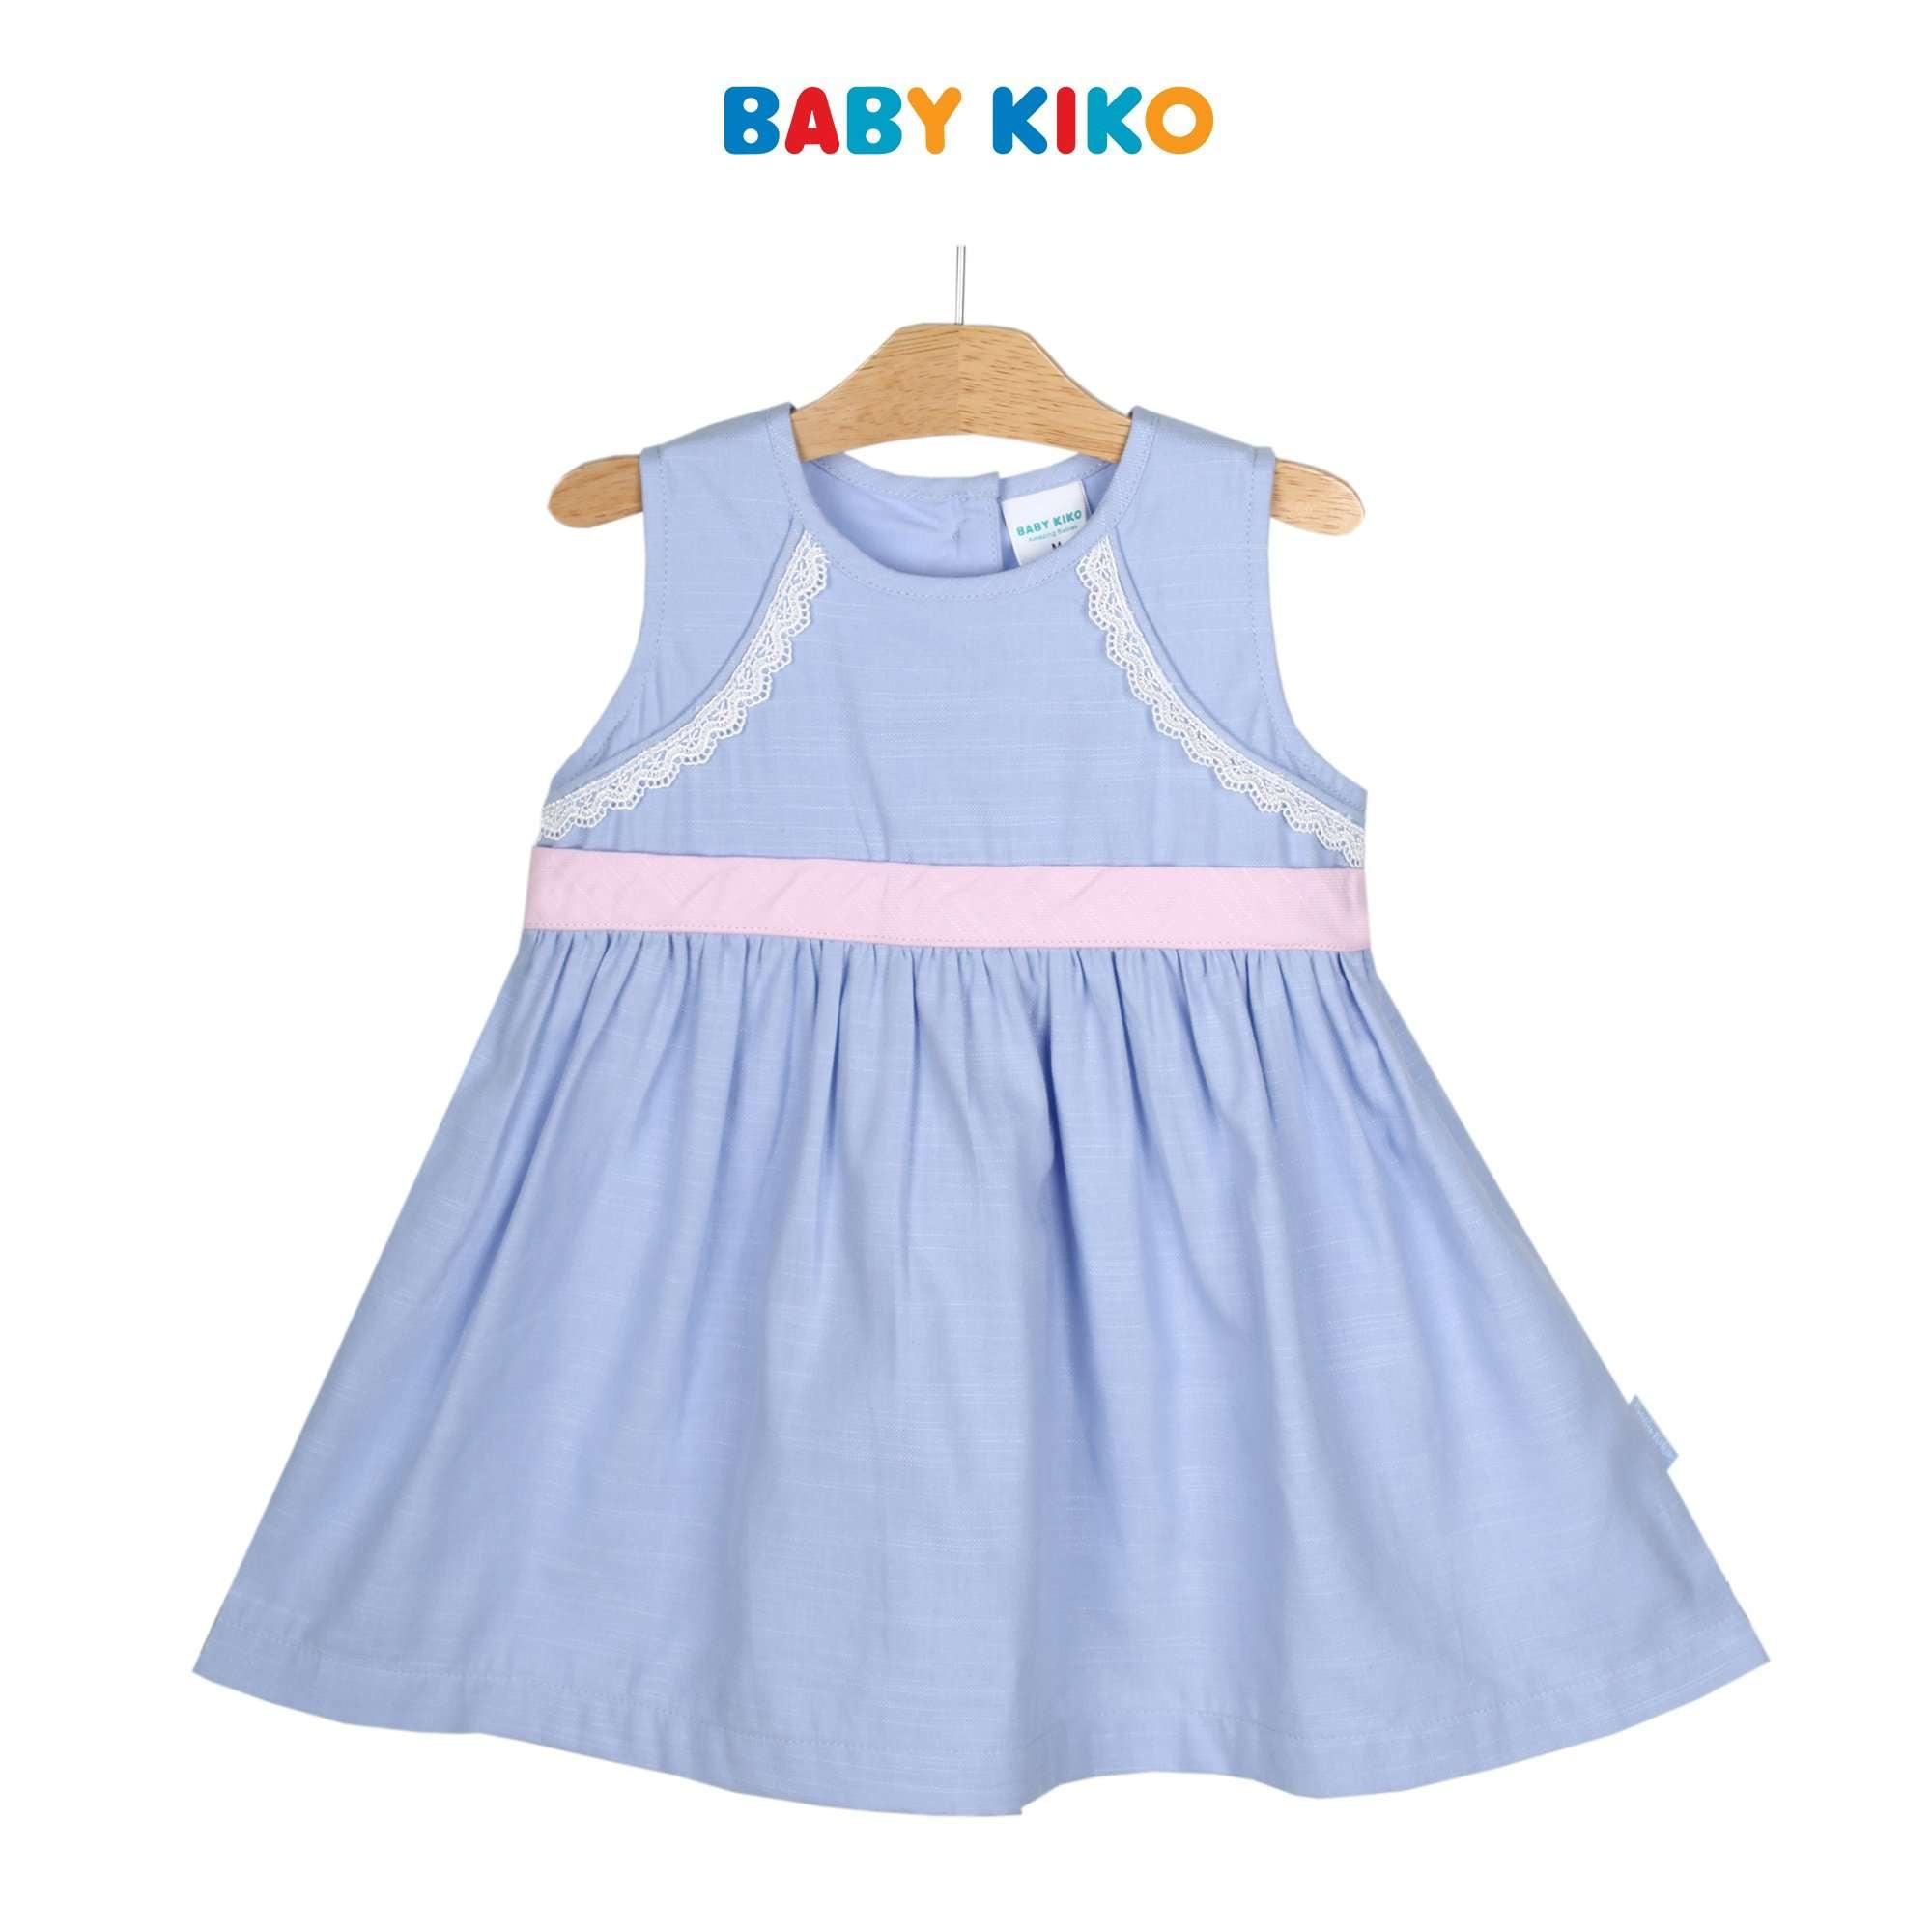 Baby KIKO Toddler Girl Sleeveless Dress - Blue 315134-311 : Buy Baby KIKO online at CMG.MY